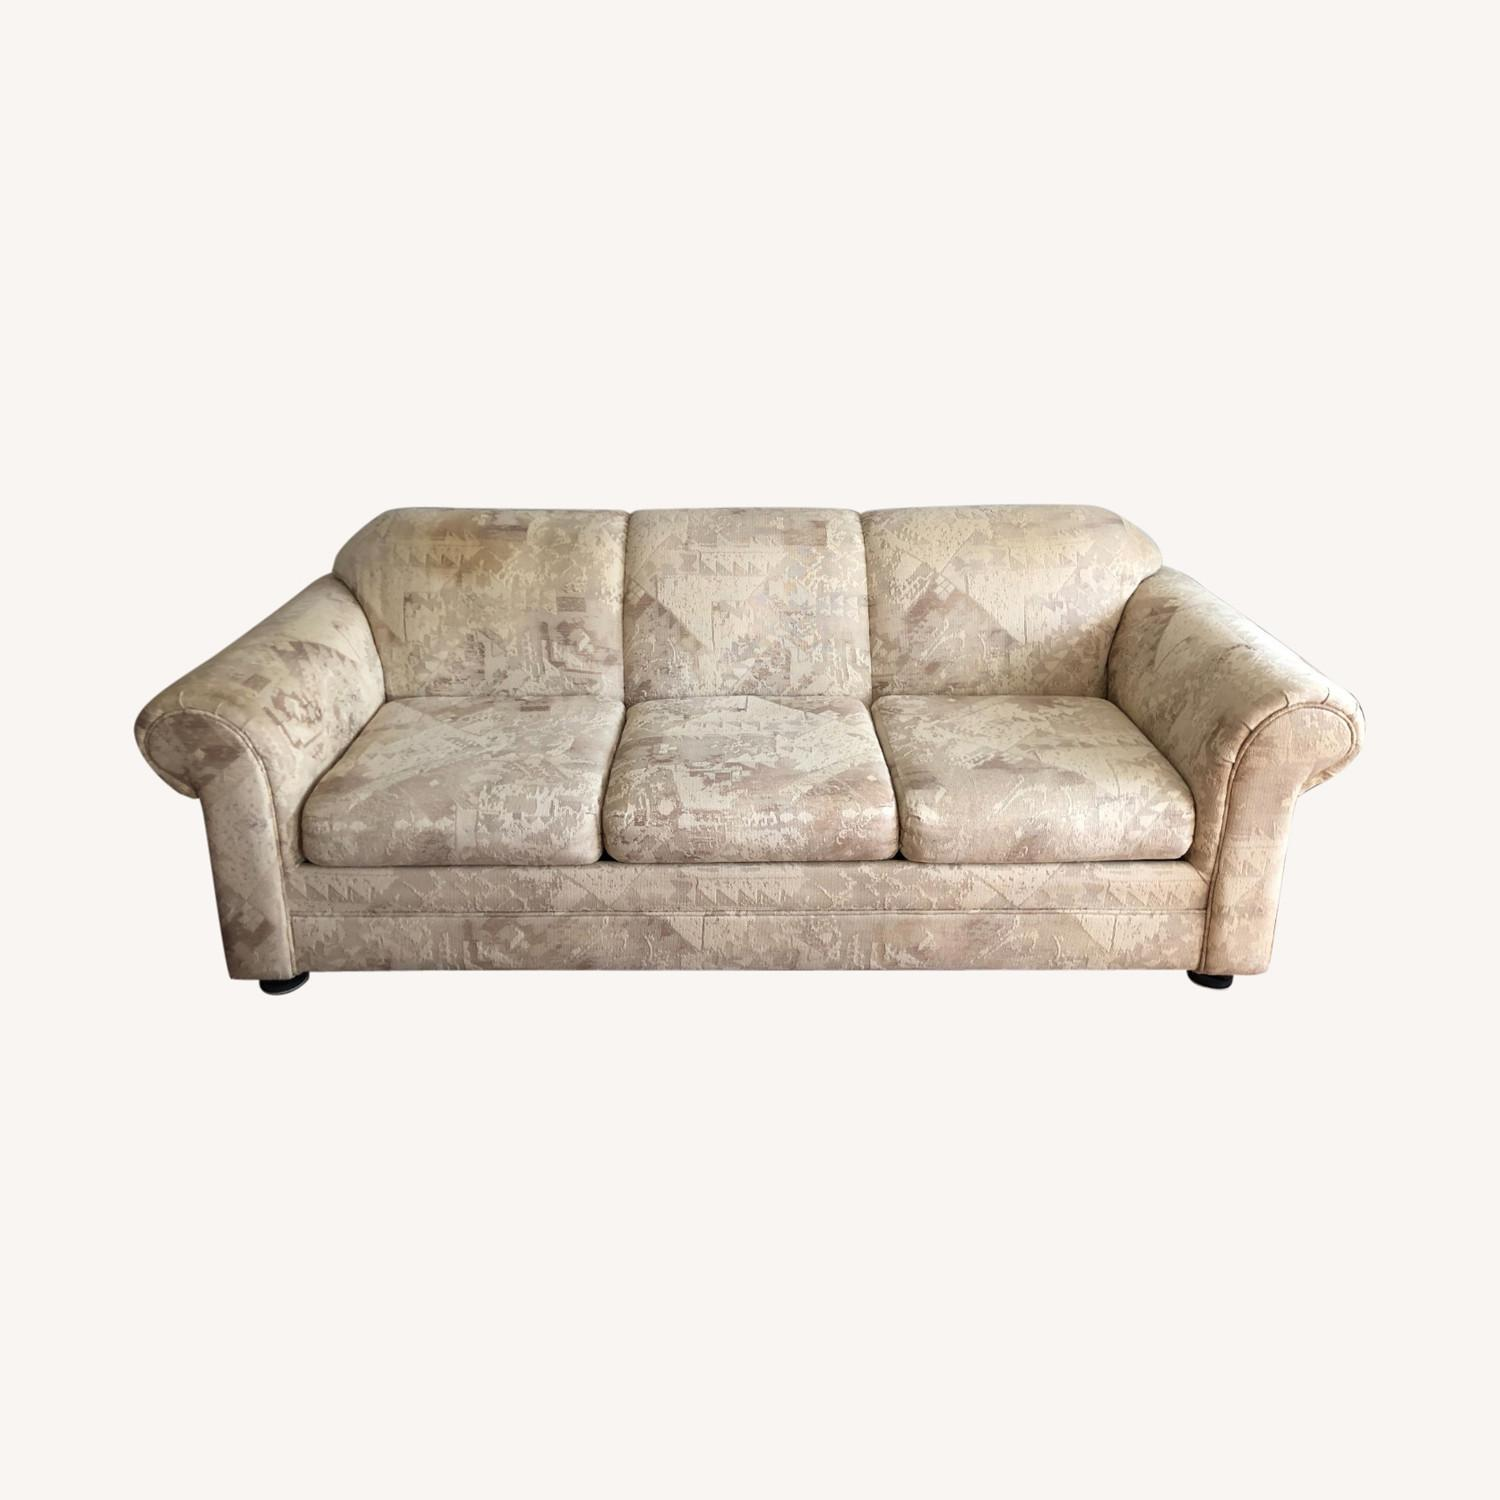 Sealey Three Seater Sleeper Sofa - image-0